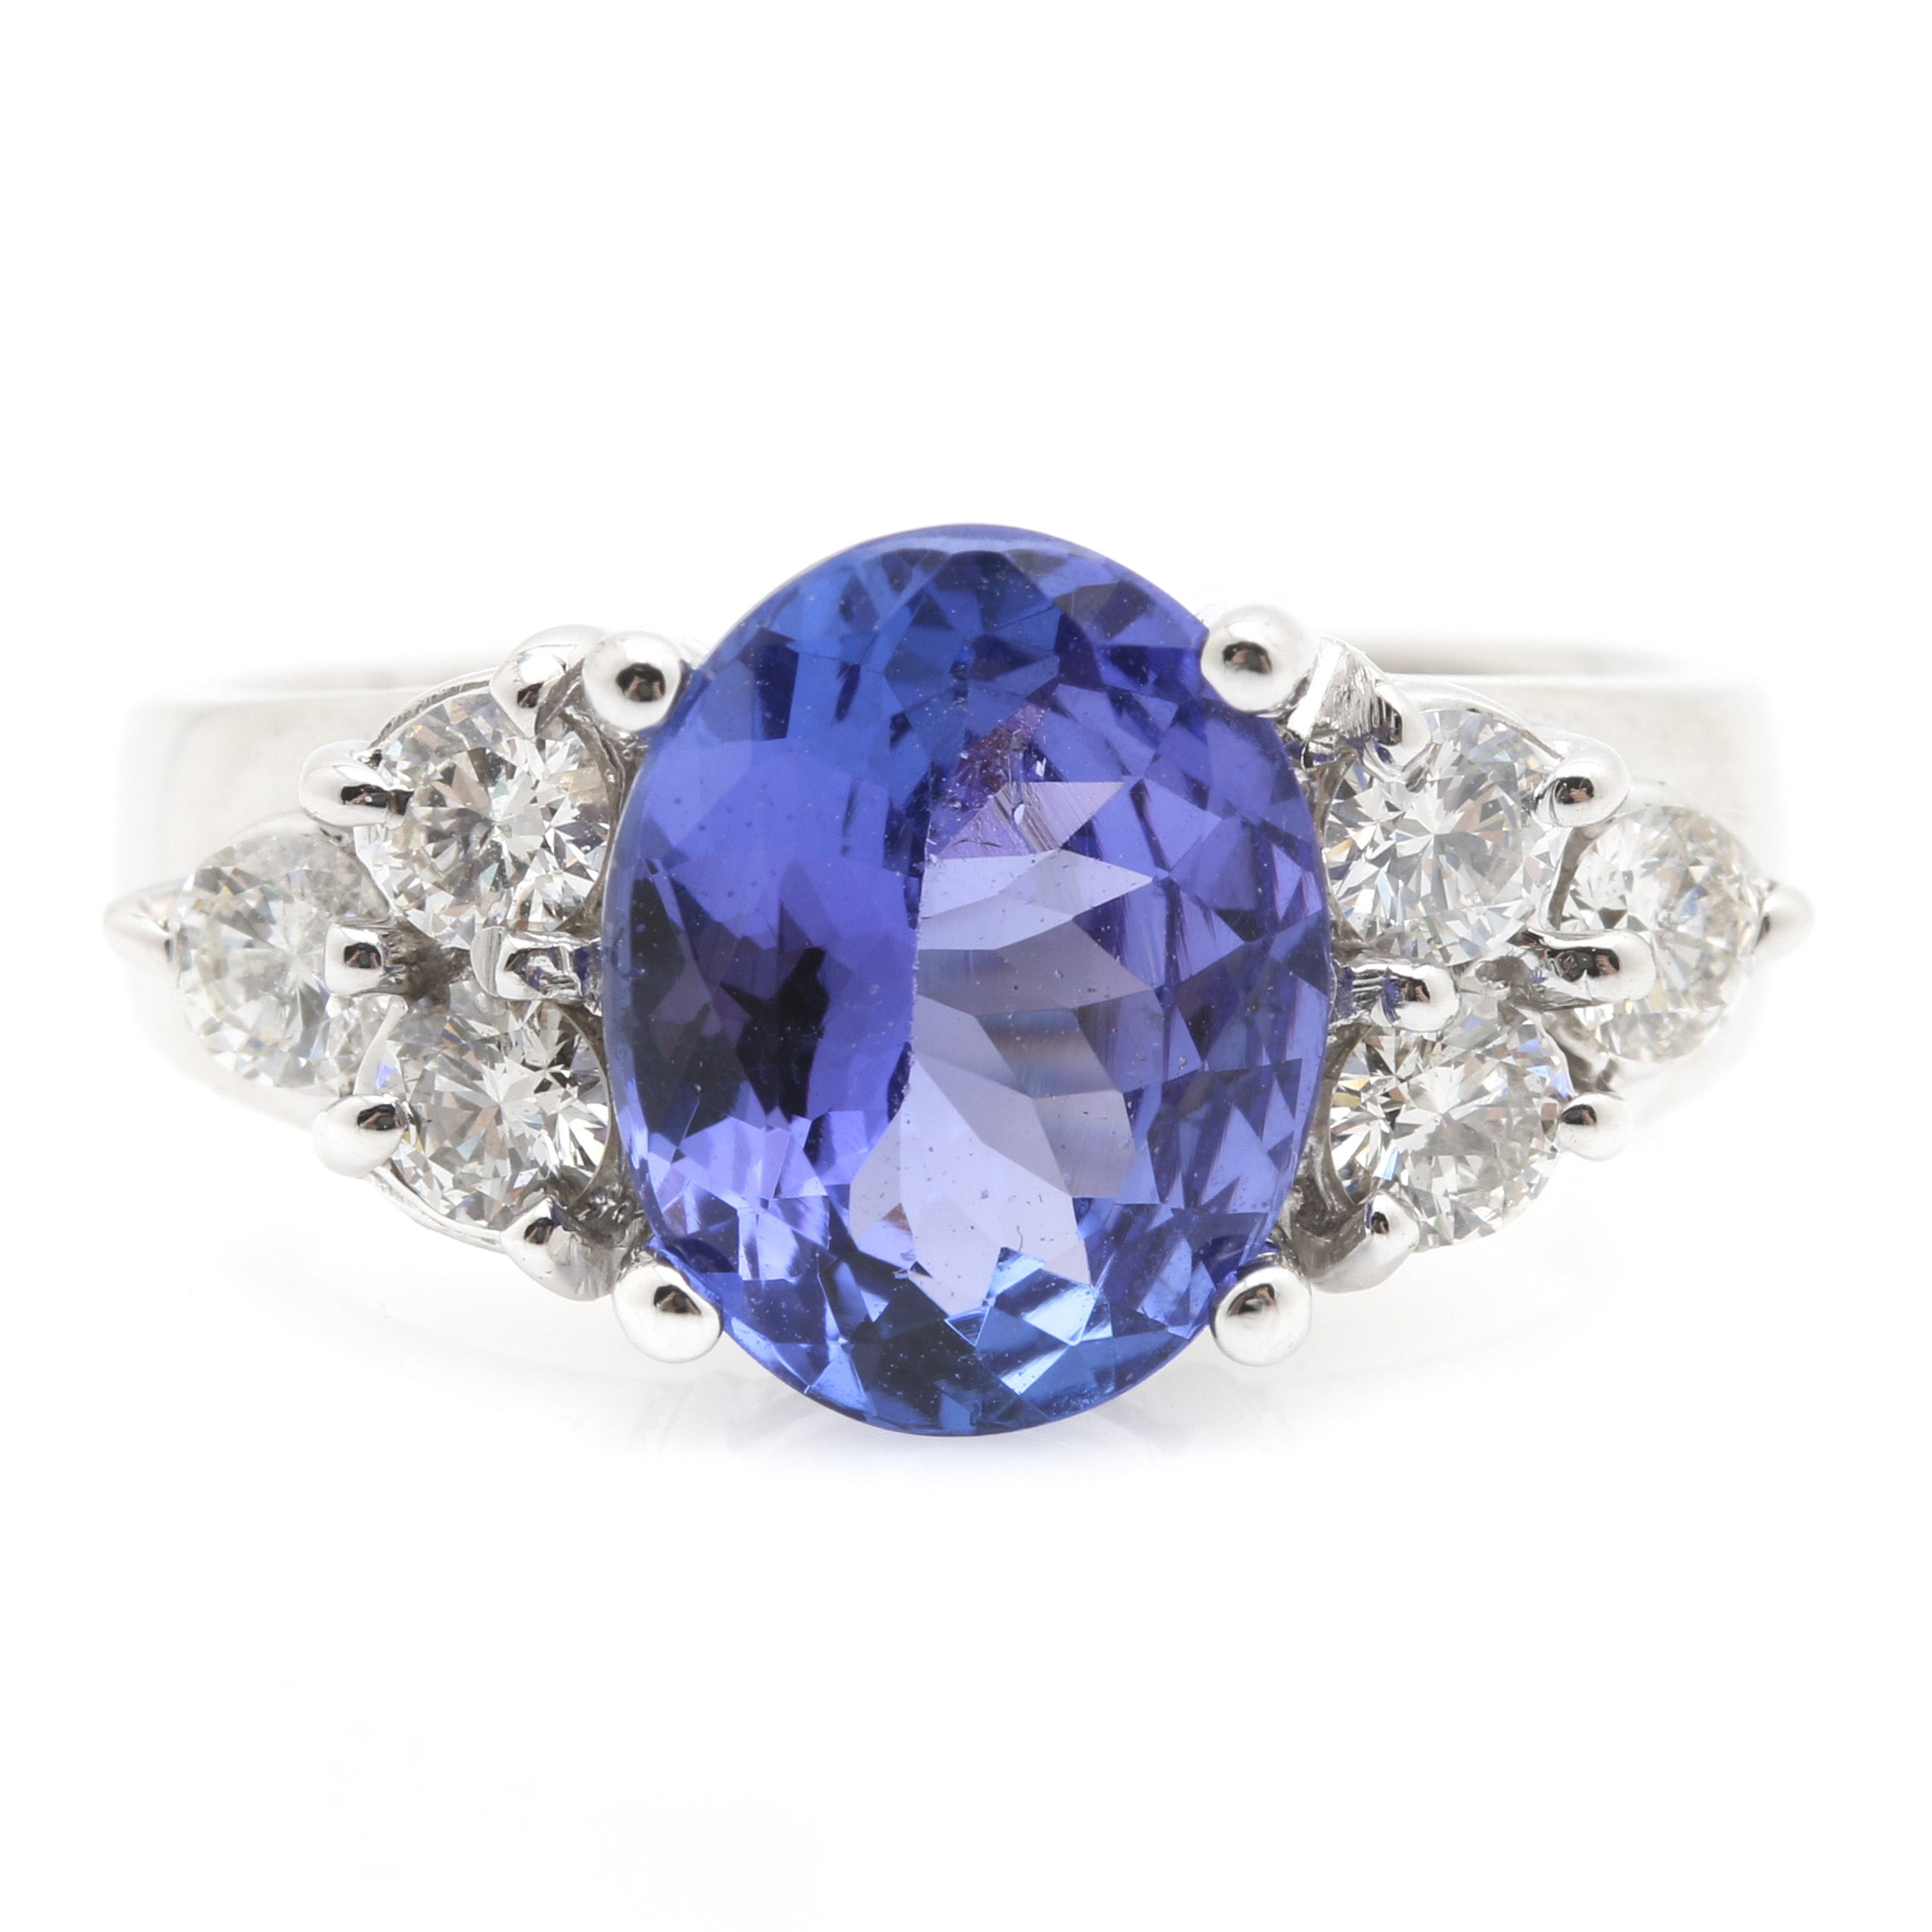 14K White Gold 2.50 CT Tanzanite and Diamond Ring